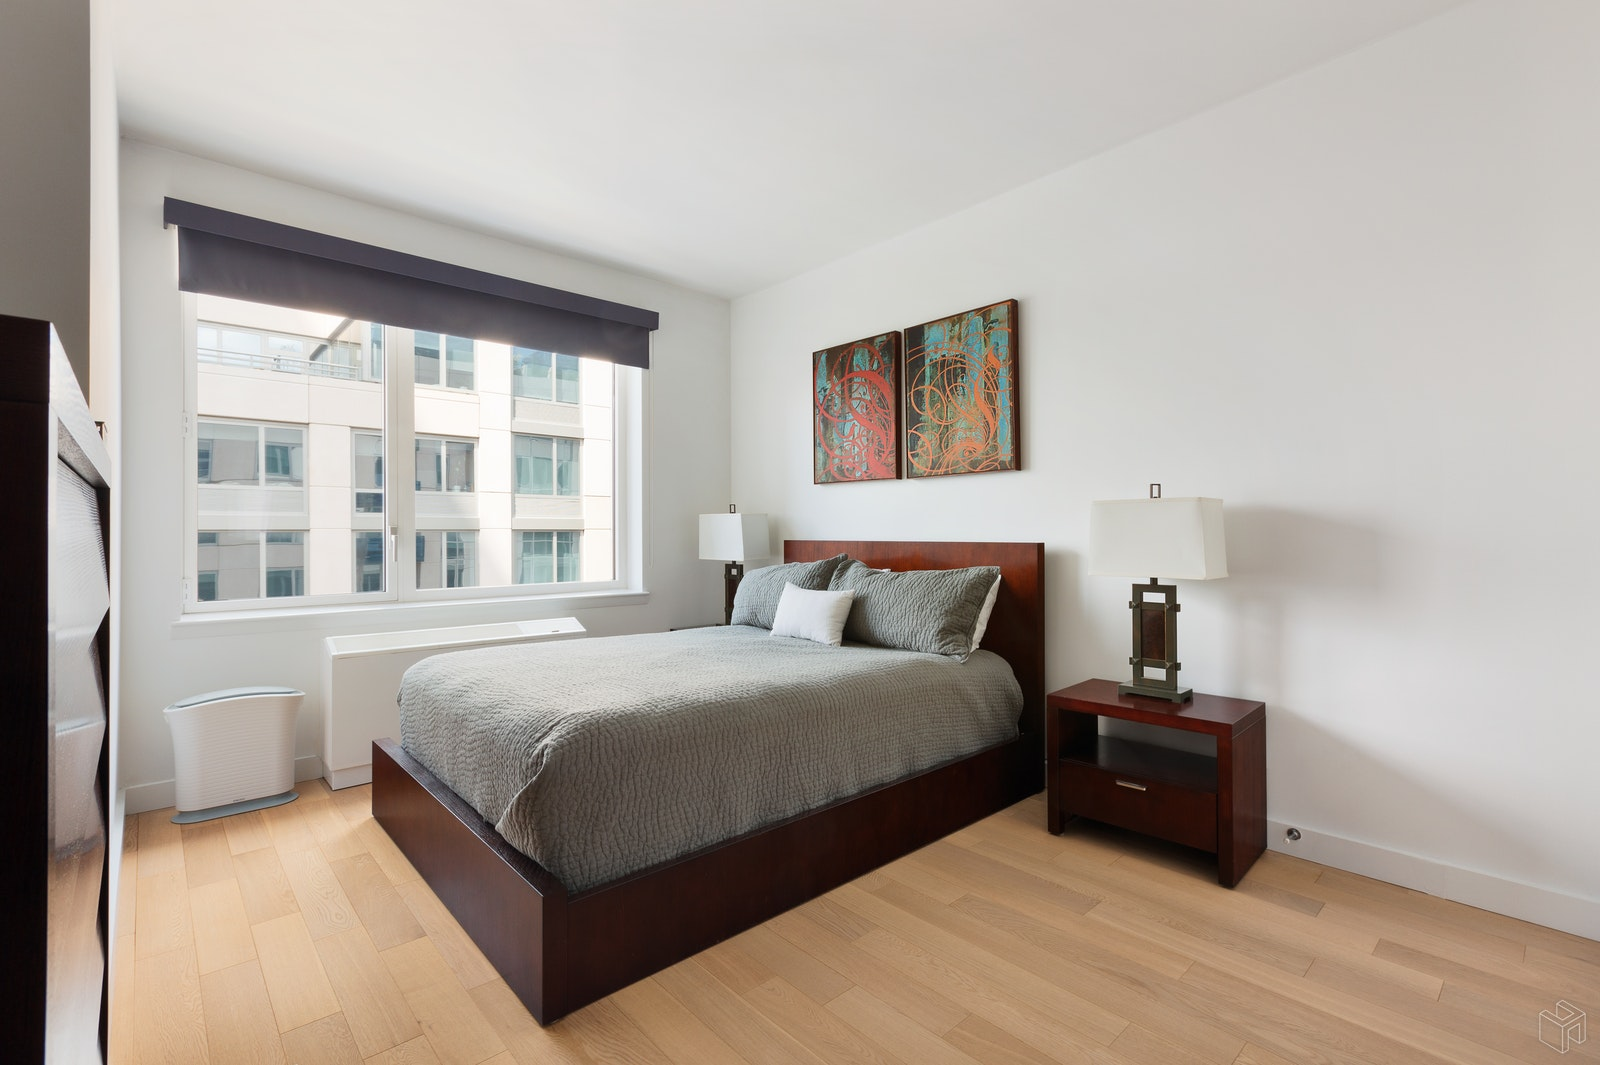 34 North 7th St 6i, Williamsburg, Brooklyn, NY, 11249, $1,299,000, Sold Property, Halstead Real Estate, Photo 5